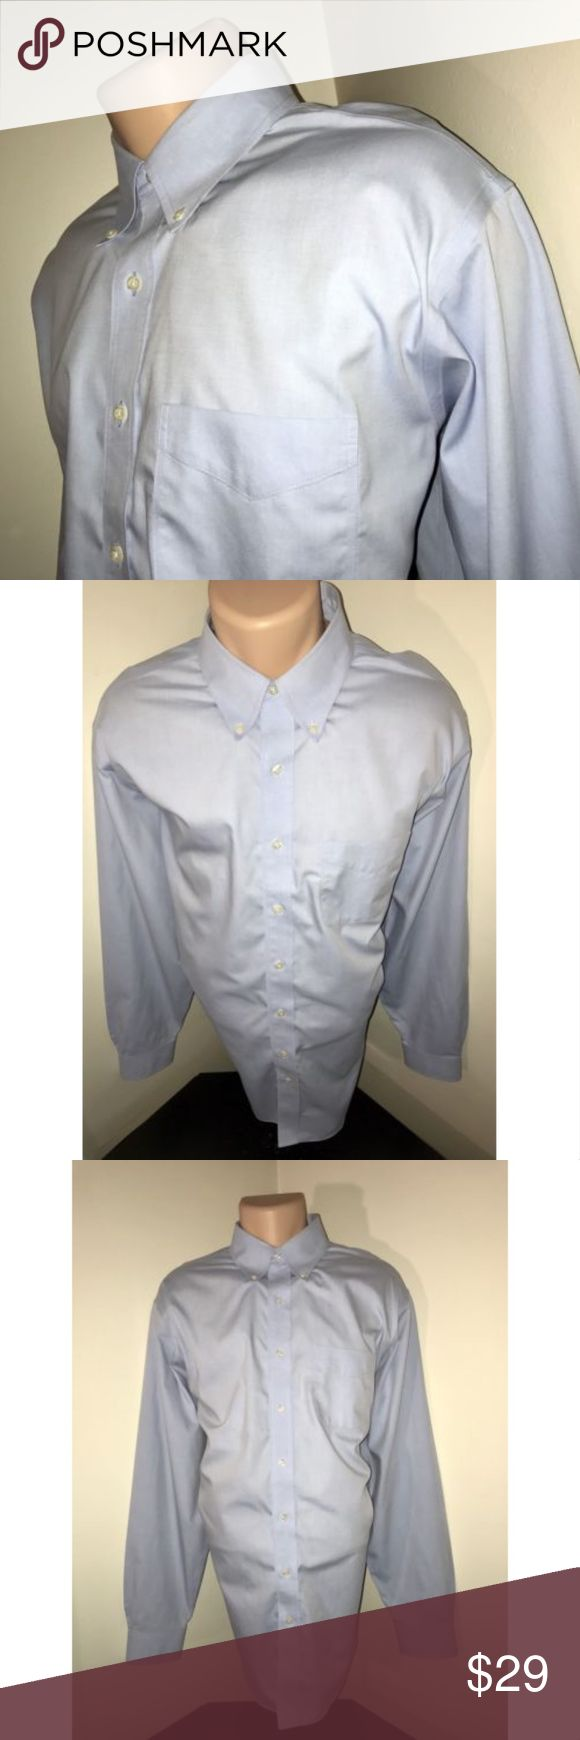 Brooks Brothers 346 Blue Oxford Non Iron Shirt 17 Size: 17 - 6/7 Color: Solid Light Blue Oxford Tag Measurements- 17 - 6/7 Material: 100% Cotton Condition: Excellent Features: Long Sleeve, Button down Collar, Only worn a few times, Comfortable, Standard Cuffs Flaws: None Measurements:  Chest - 26.5 inches  Shoulder - 21 inches  Sleeve - 26.25 inches  Length - 33.5 inches Brooks Brothers Shirts Dress Shirts